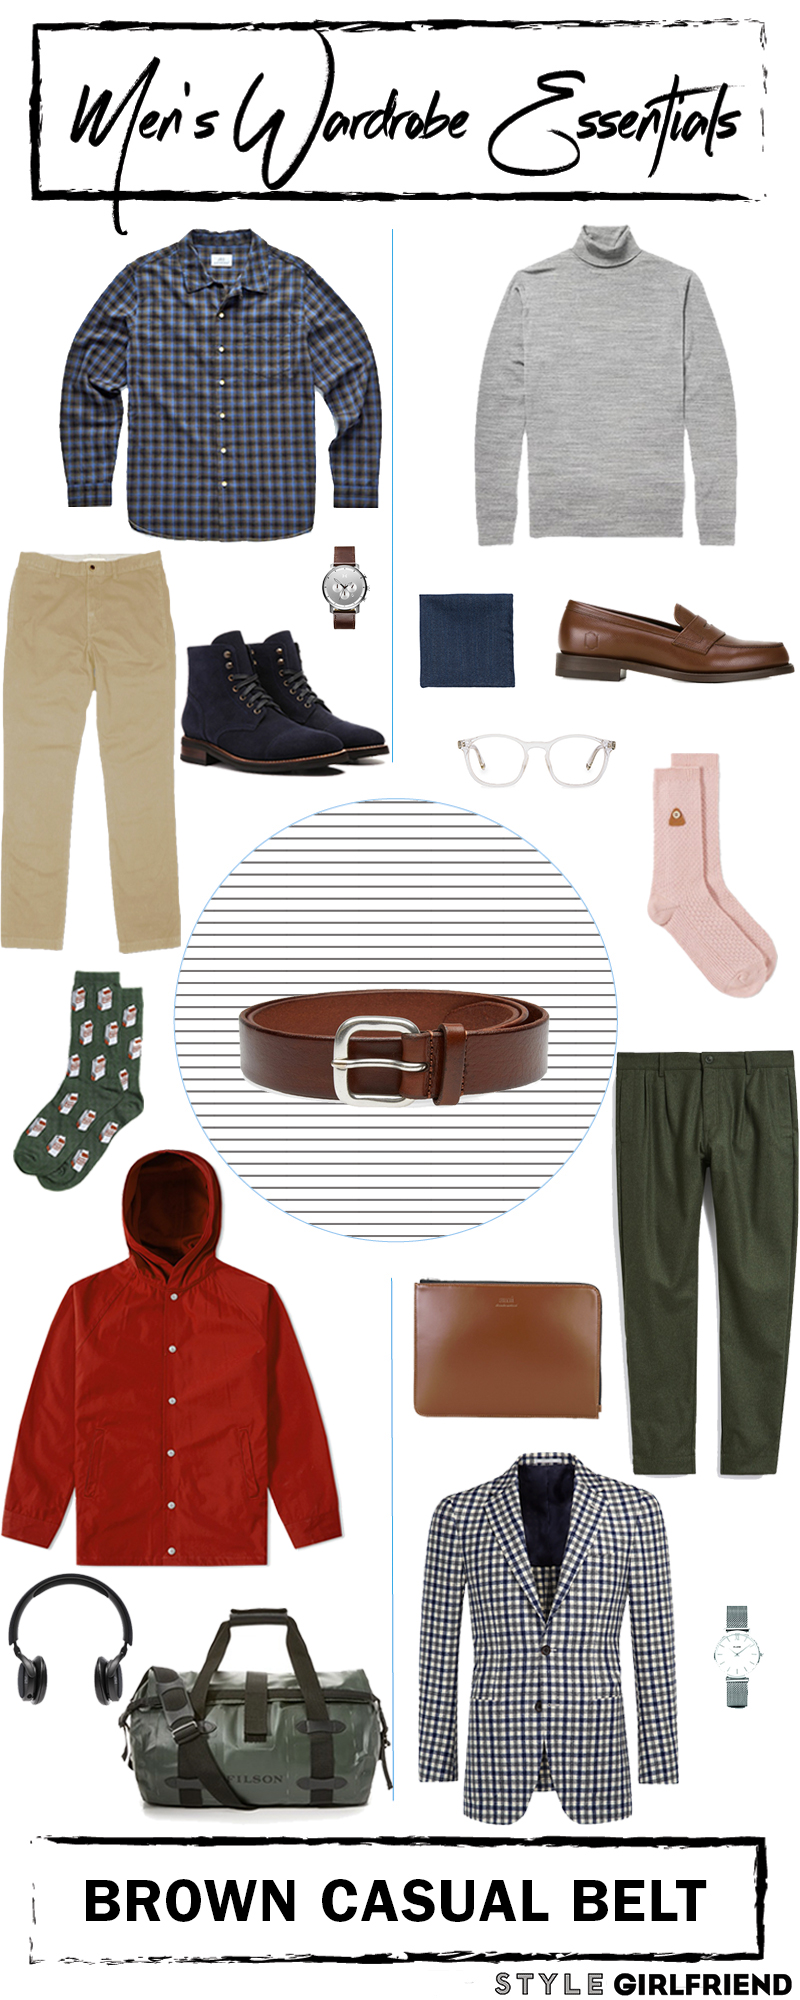 brown casual belt, style girlfirend, outfit laydown, menswear, fall mens look,